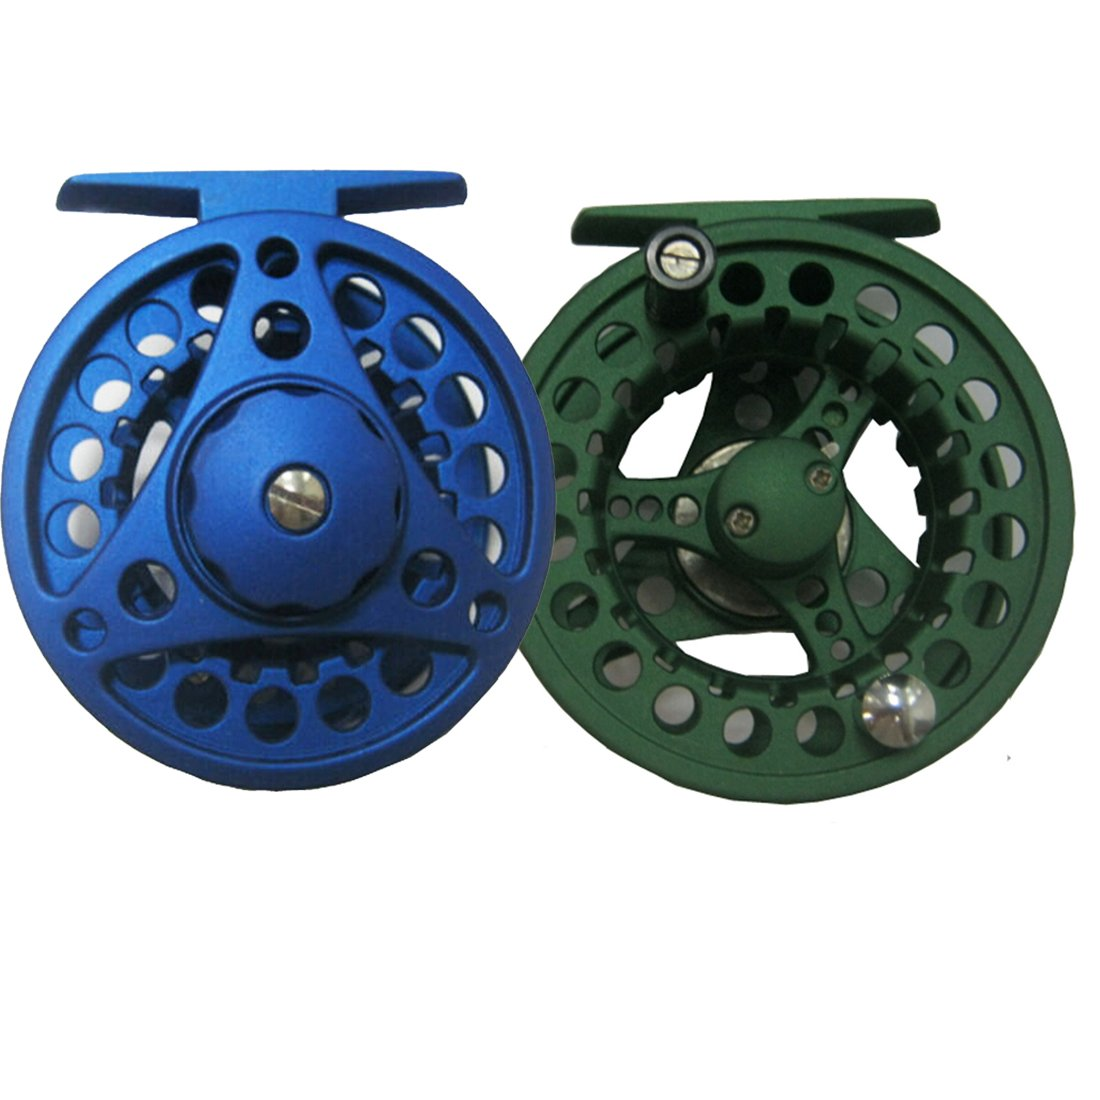 AventikINT Aluminum Alloy Body Fly Reel Die Casting Fly Fishing Reel Super Large Arbor Fly Fishing Trout Reel for Freshwater and Saltwater